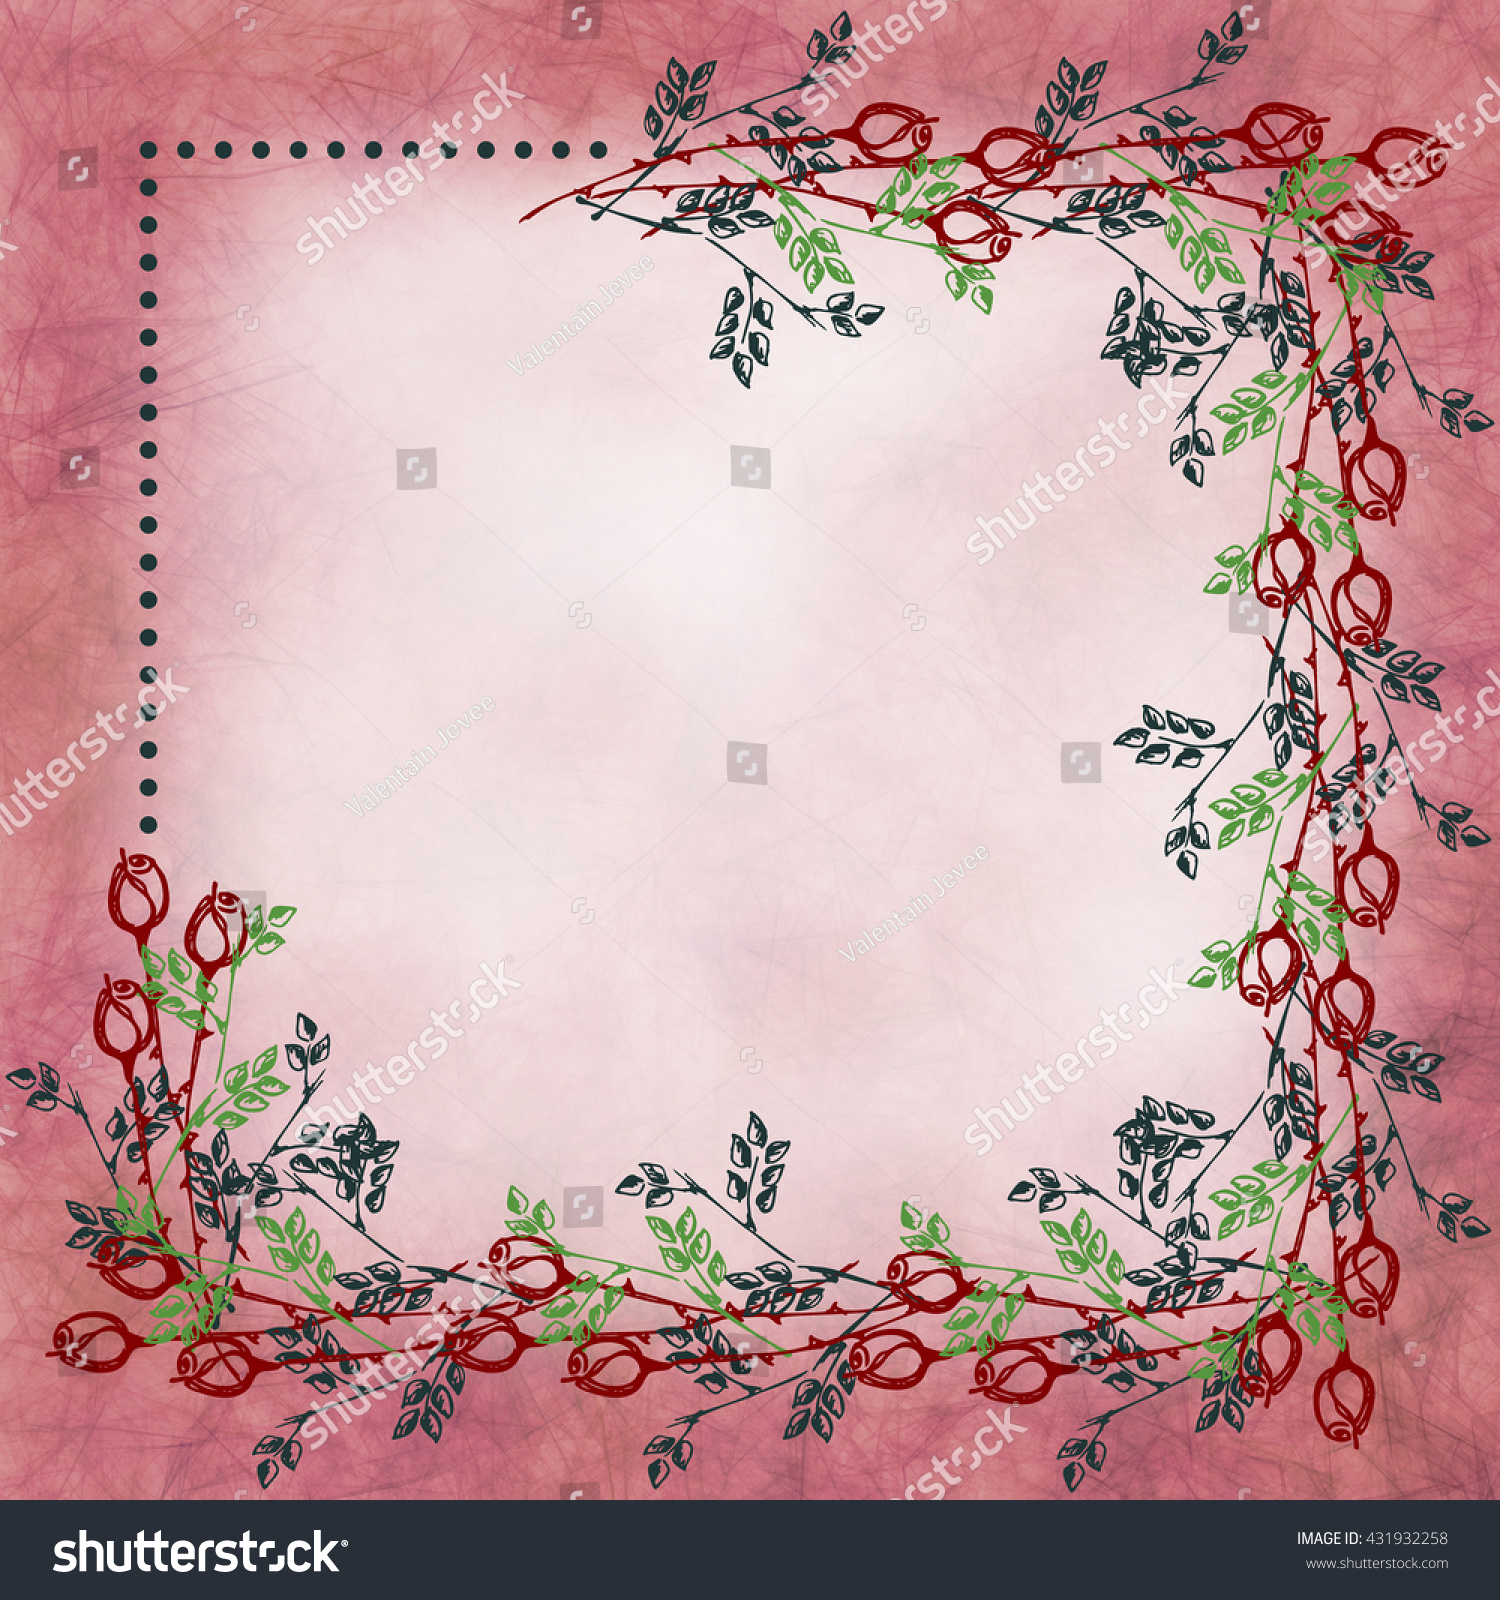 Hand Drawn Textured Floral Background Vintage Card Stock